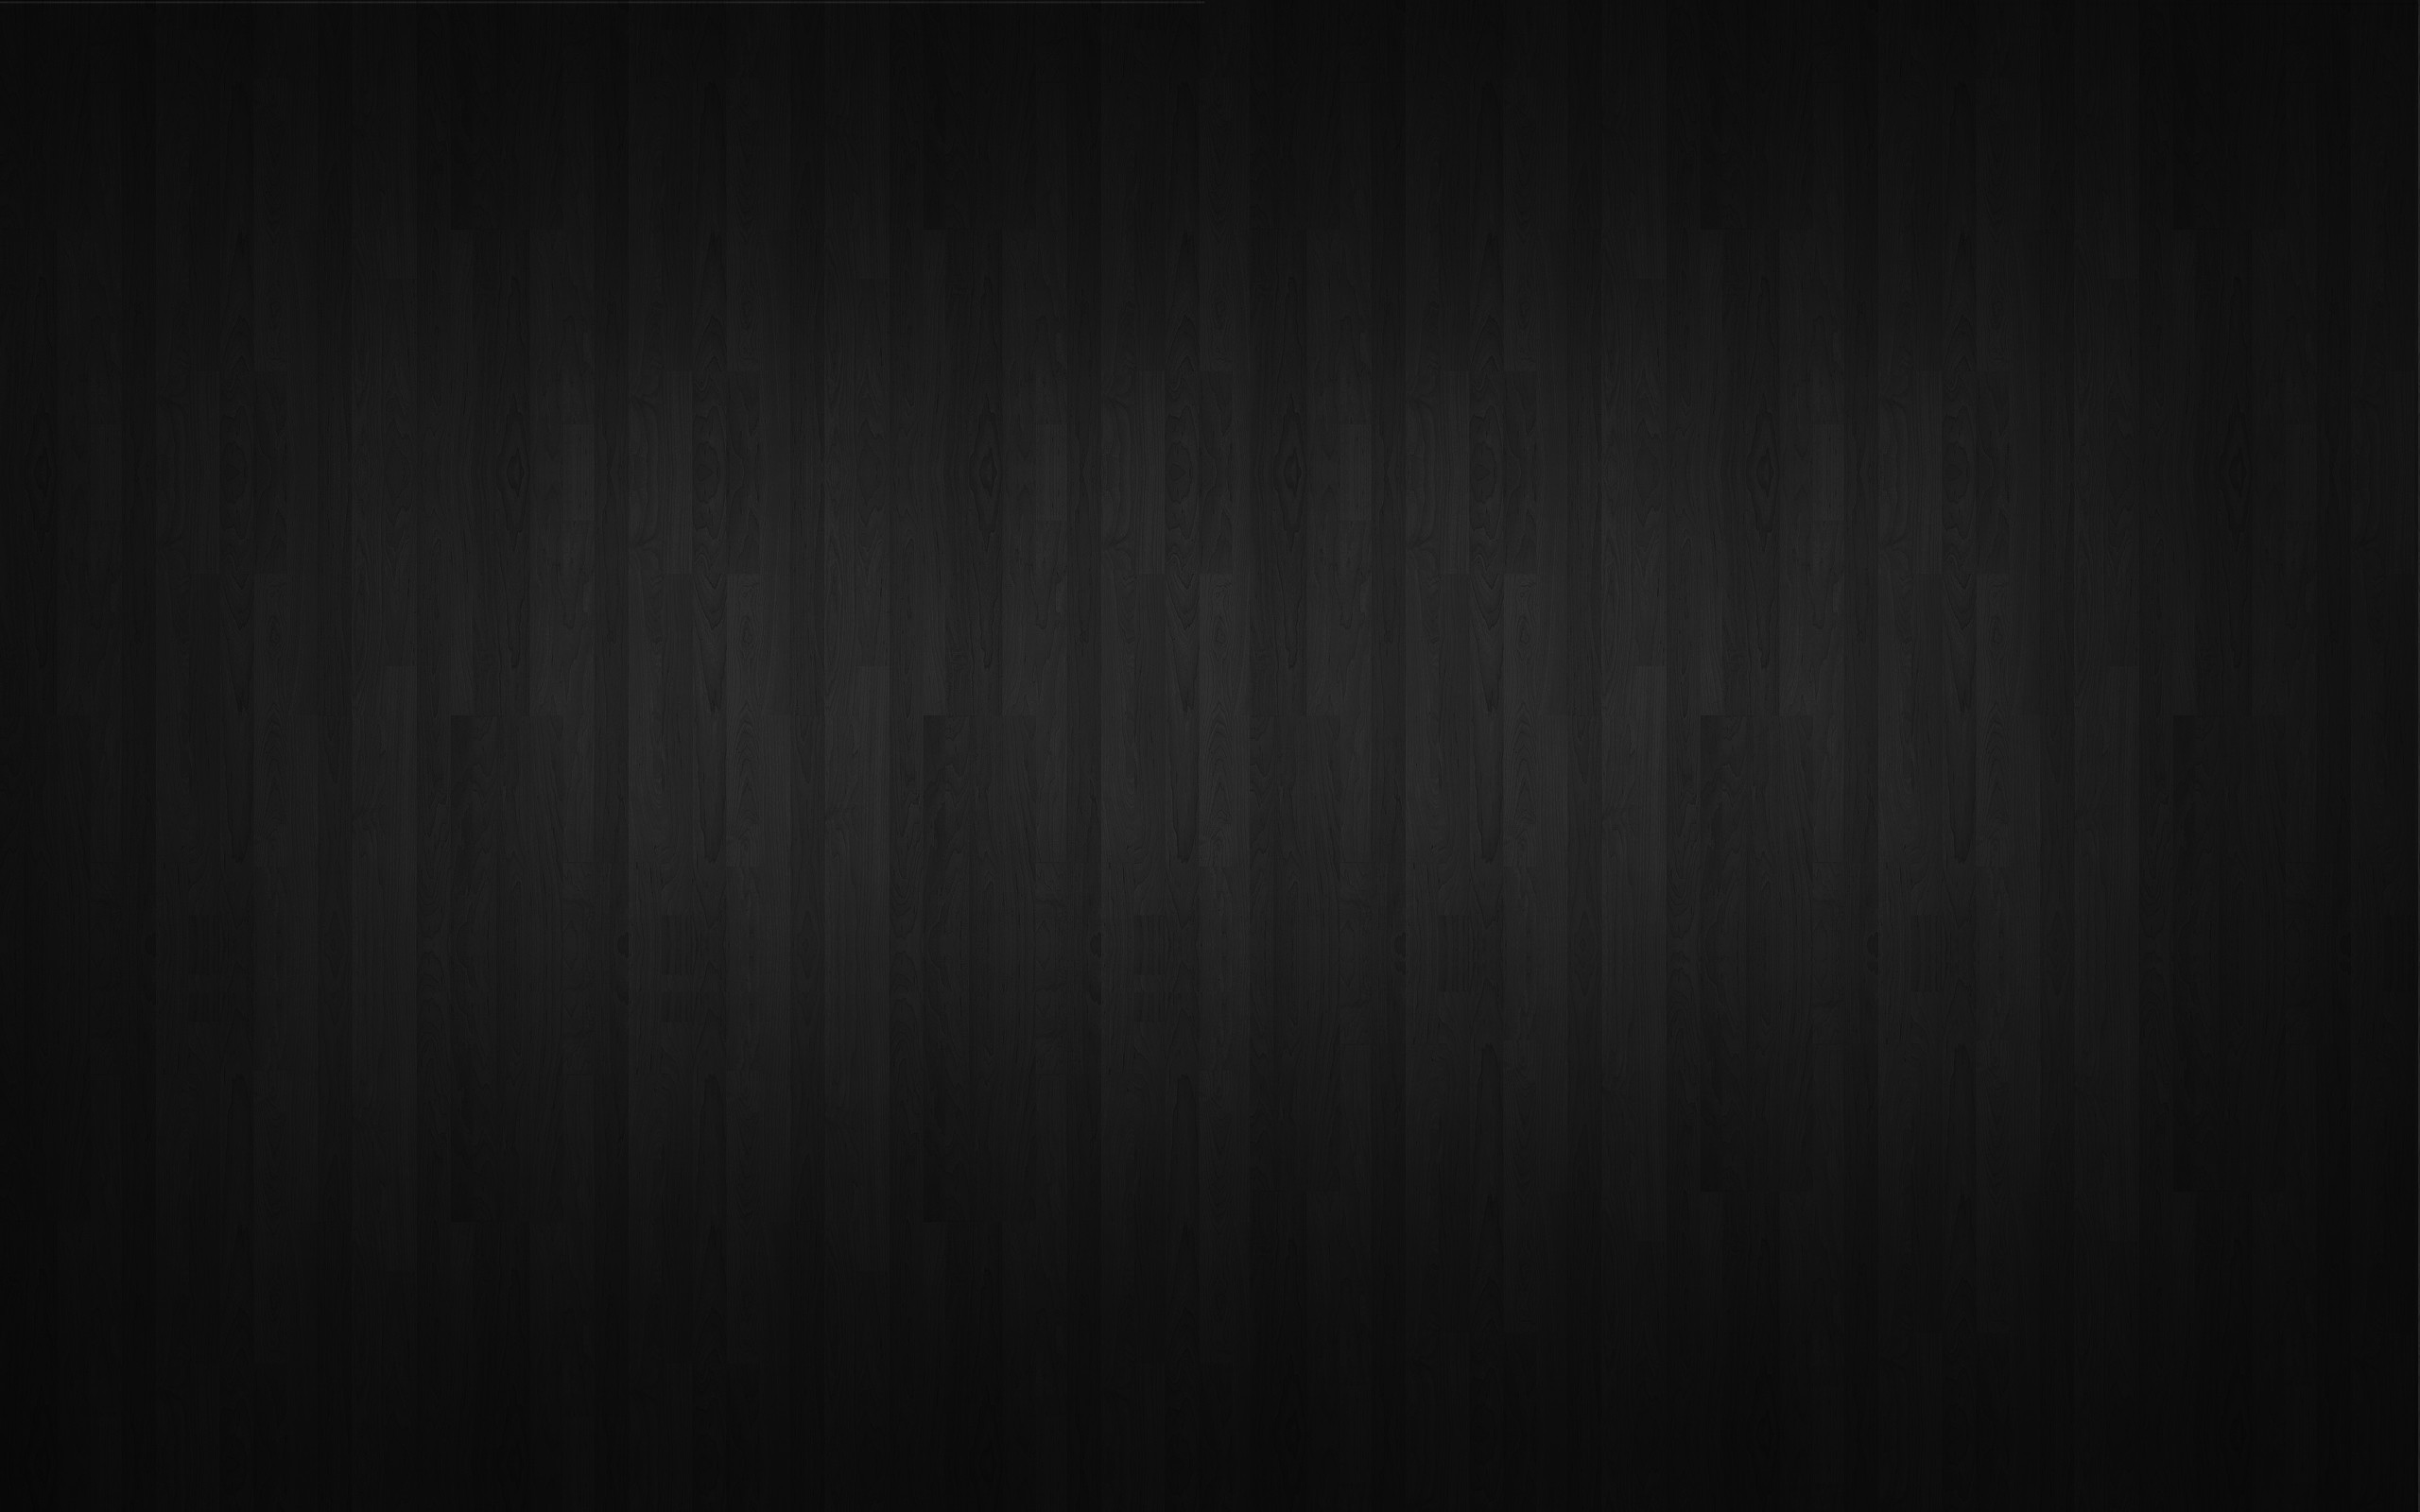 2560x1600 Black Wallpaper by Bibi Choy PC.57-FLH